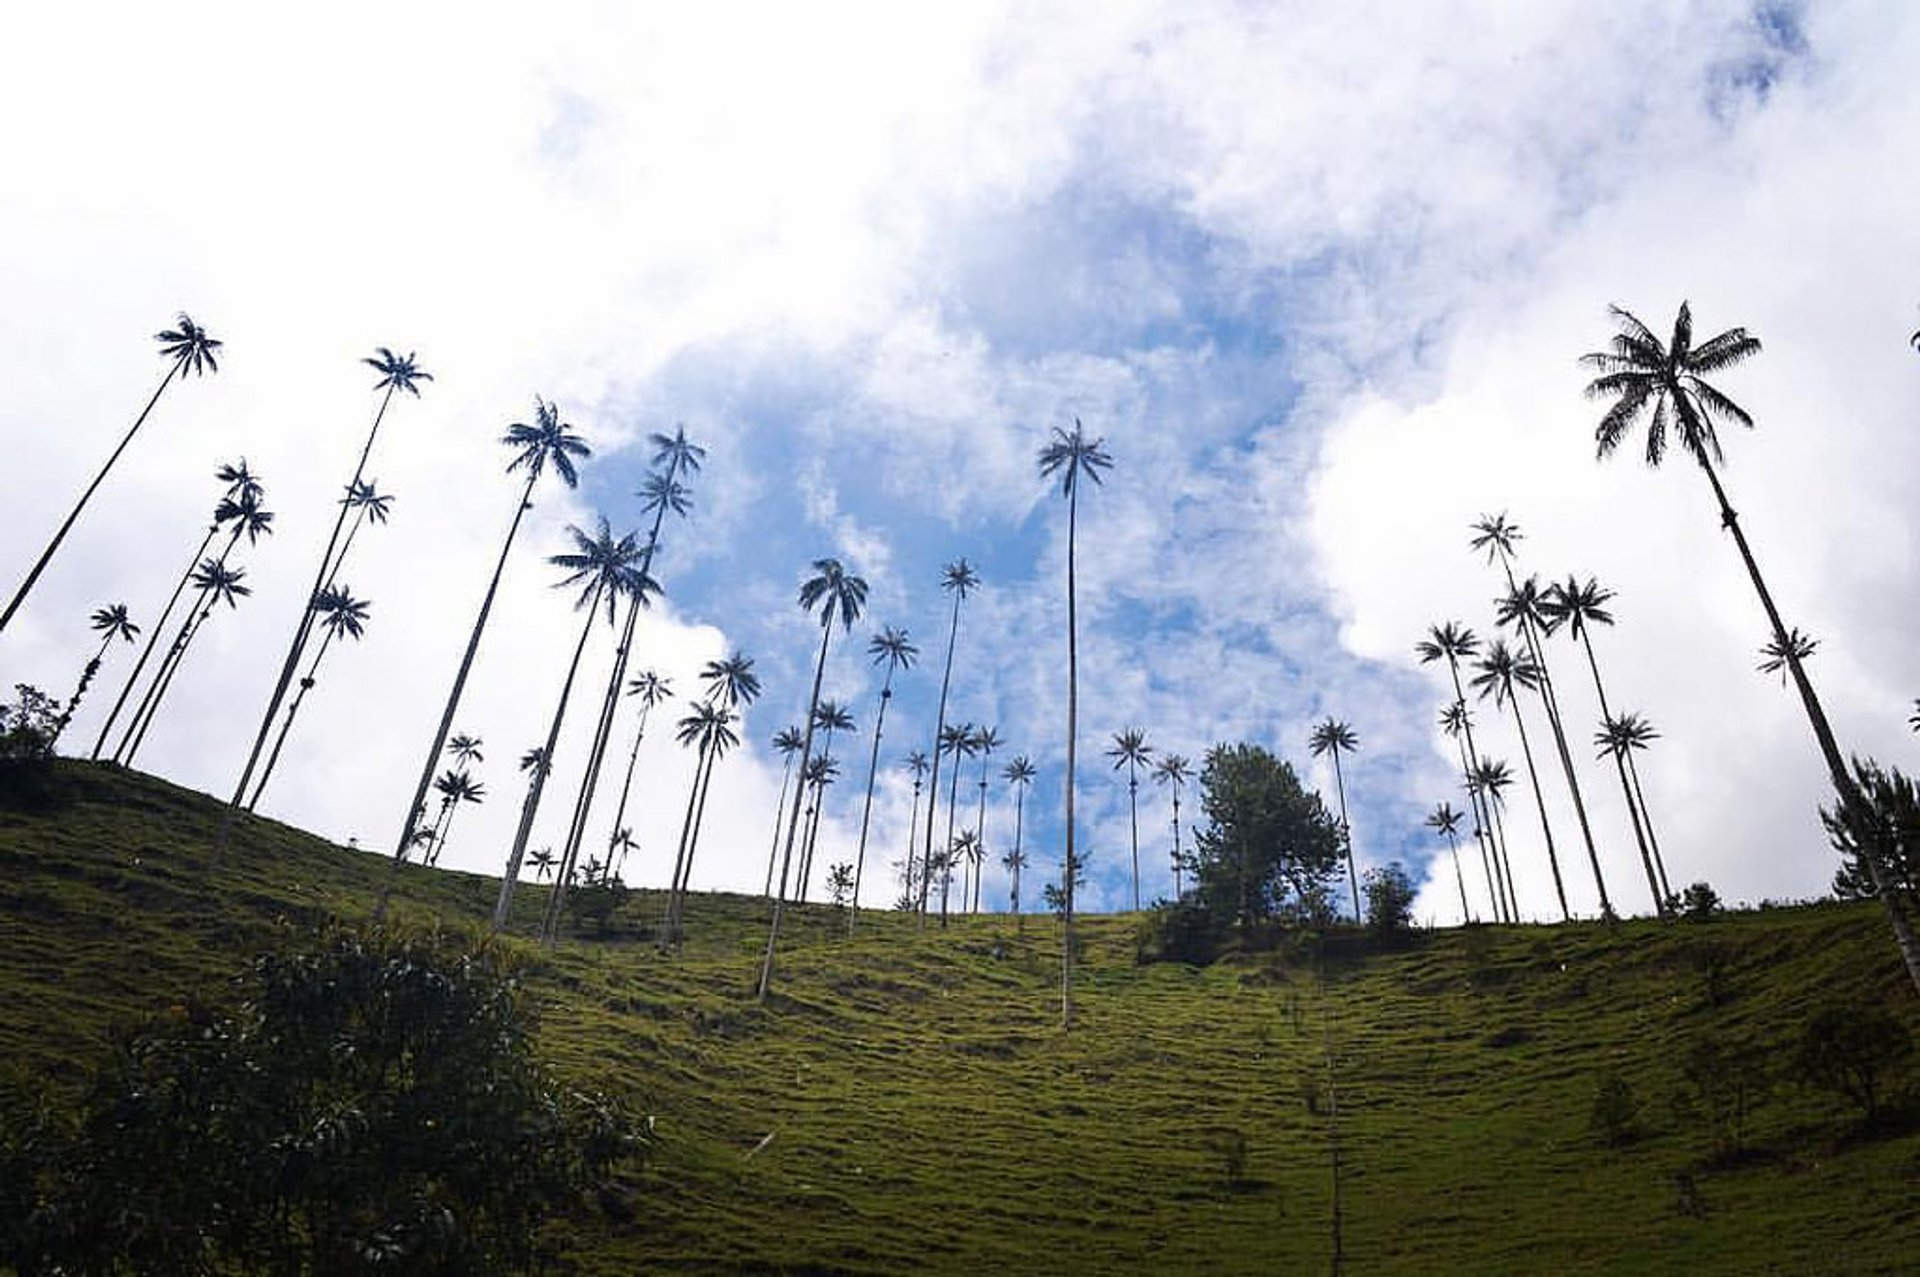 Wax palms in the Cocora Valley 2020